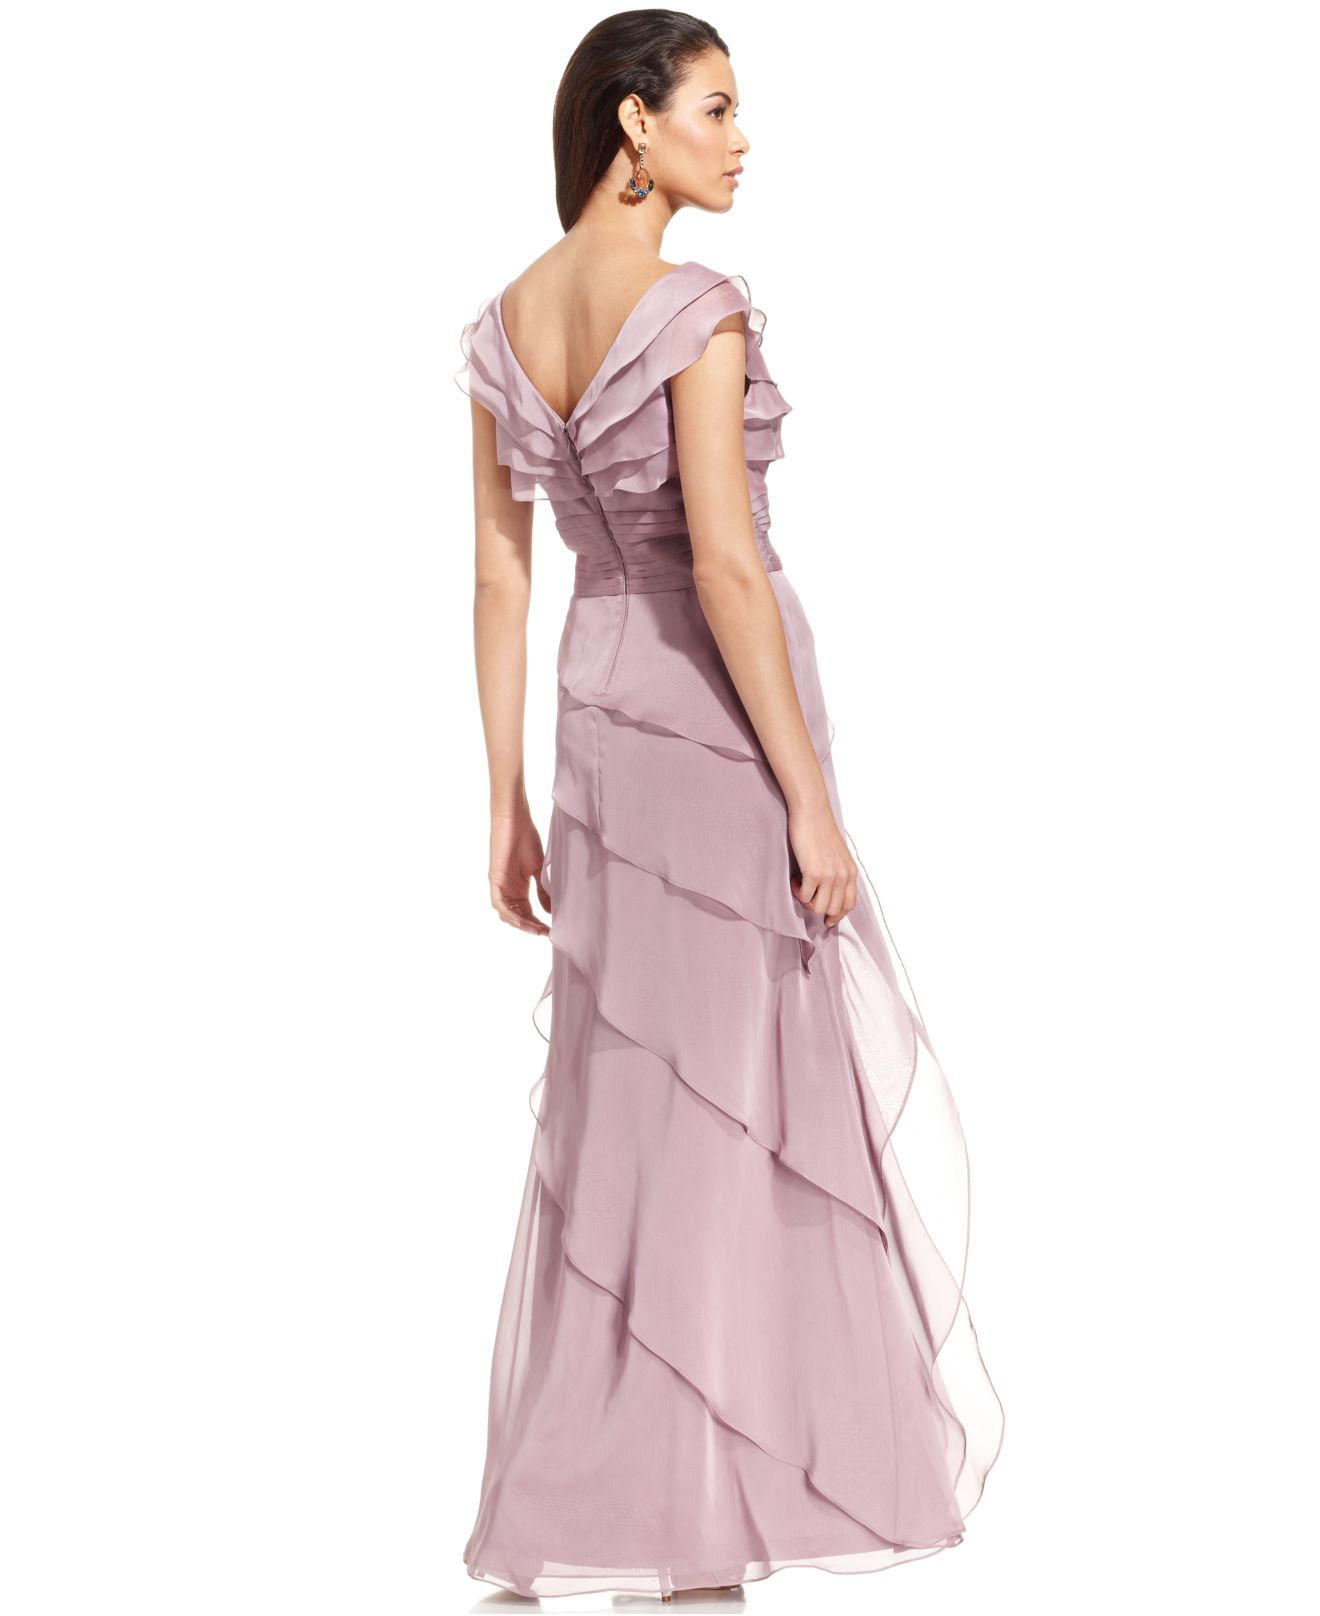 Lyst - Adrianna Papell Tiered Evening Dress in Purple